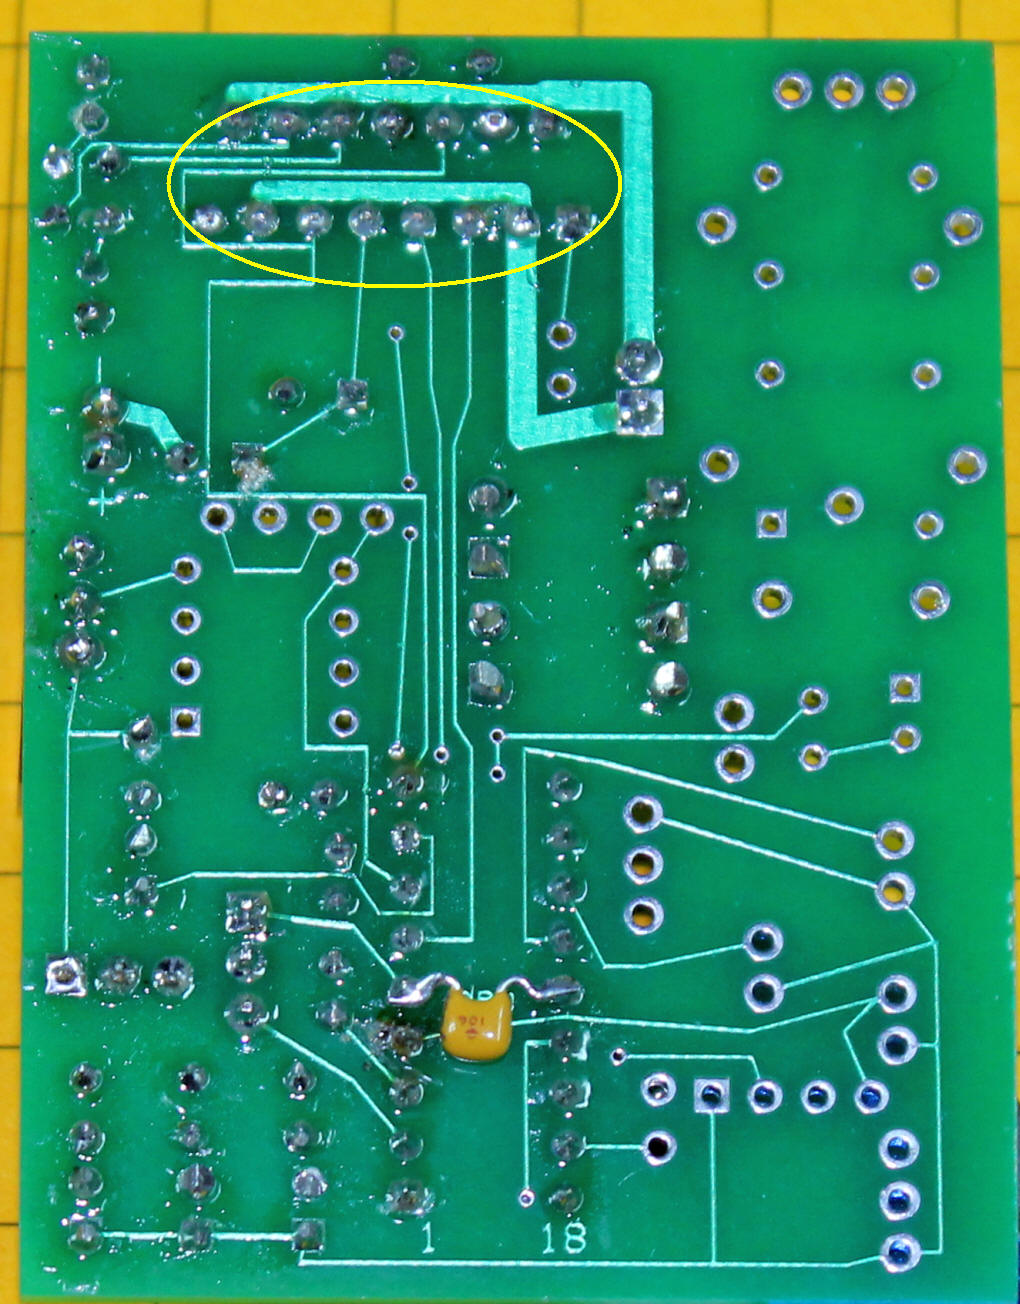 Picaxe Model Railroad Speed Controller Locomotive Infrared Circuit Electronic The Last Small Capacitor Goes On Back Of Board Between Pins 5 And 14 Cut Its Leads Before Inserting Soldering To